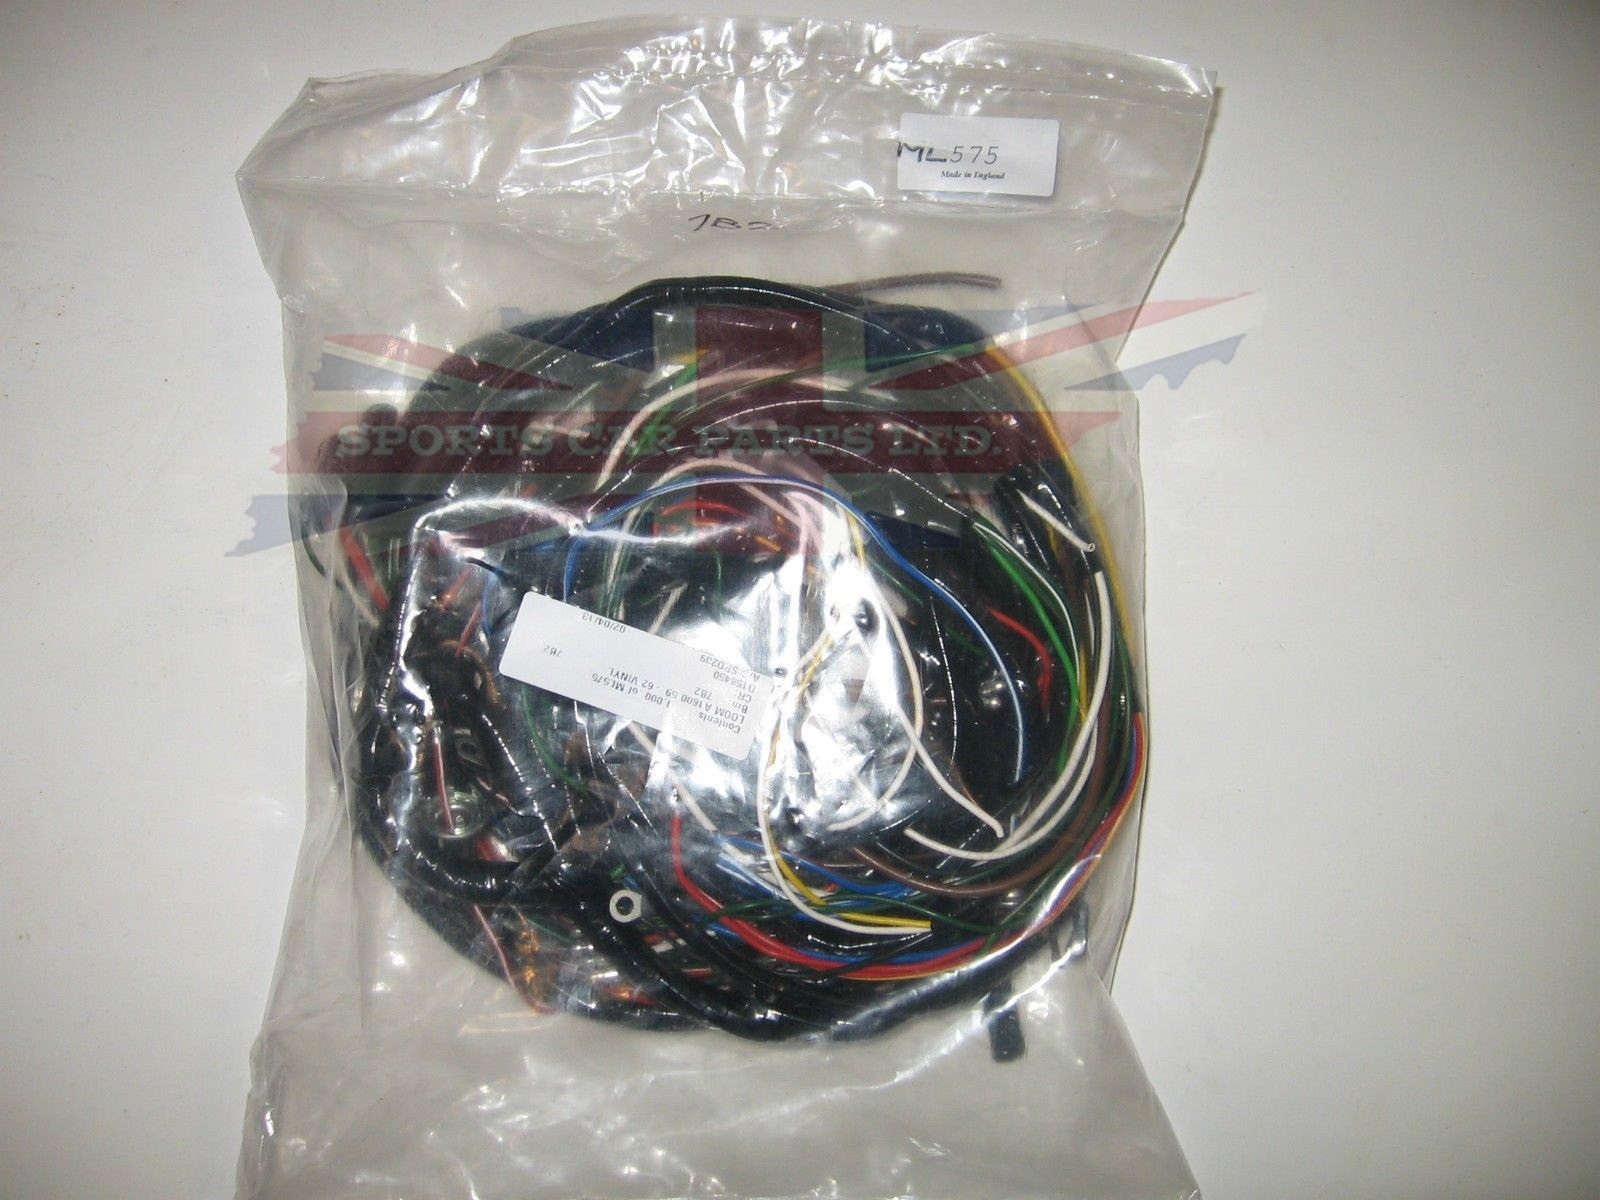 Vinyl Covered Wiring Harness For Mg Mga 1600 1959